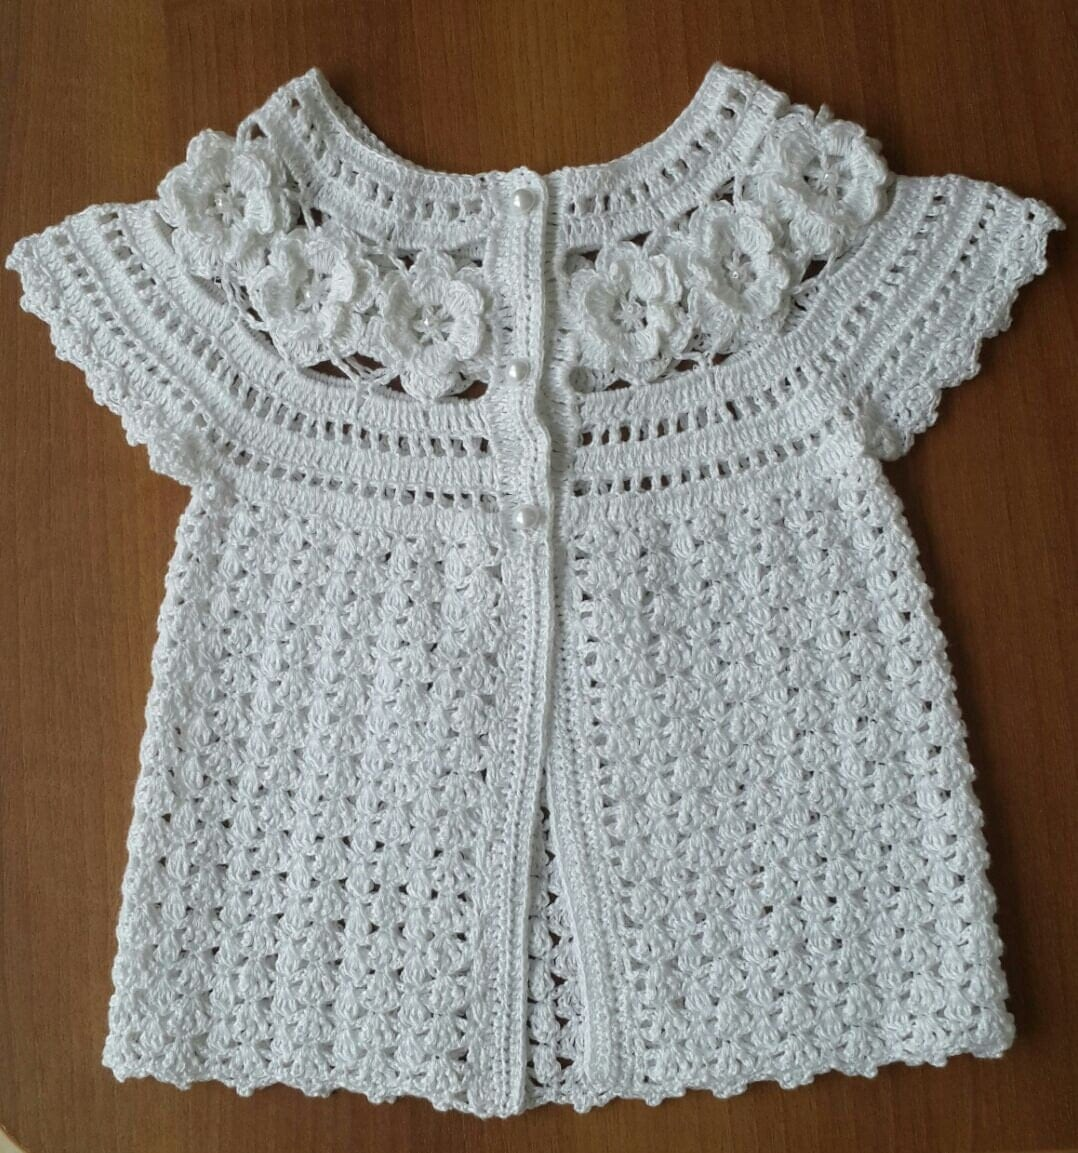 Knitting Dress Patterns For Babies : Knit baby dress knitted